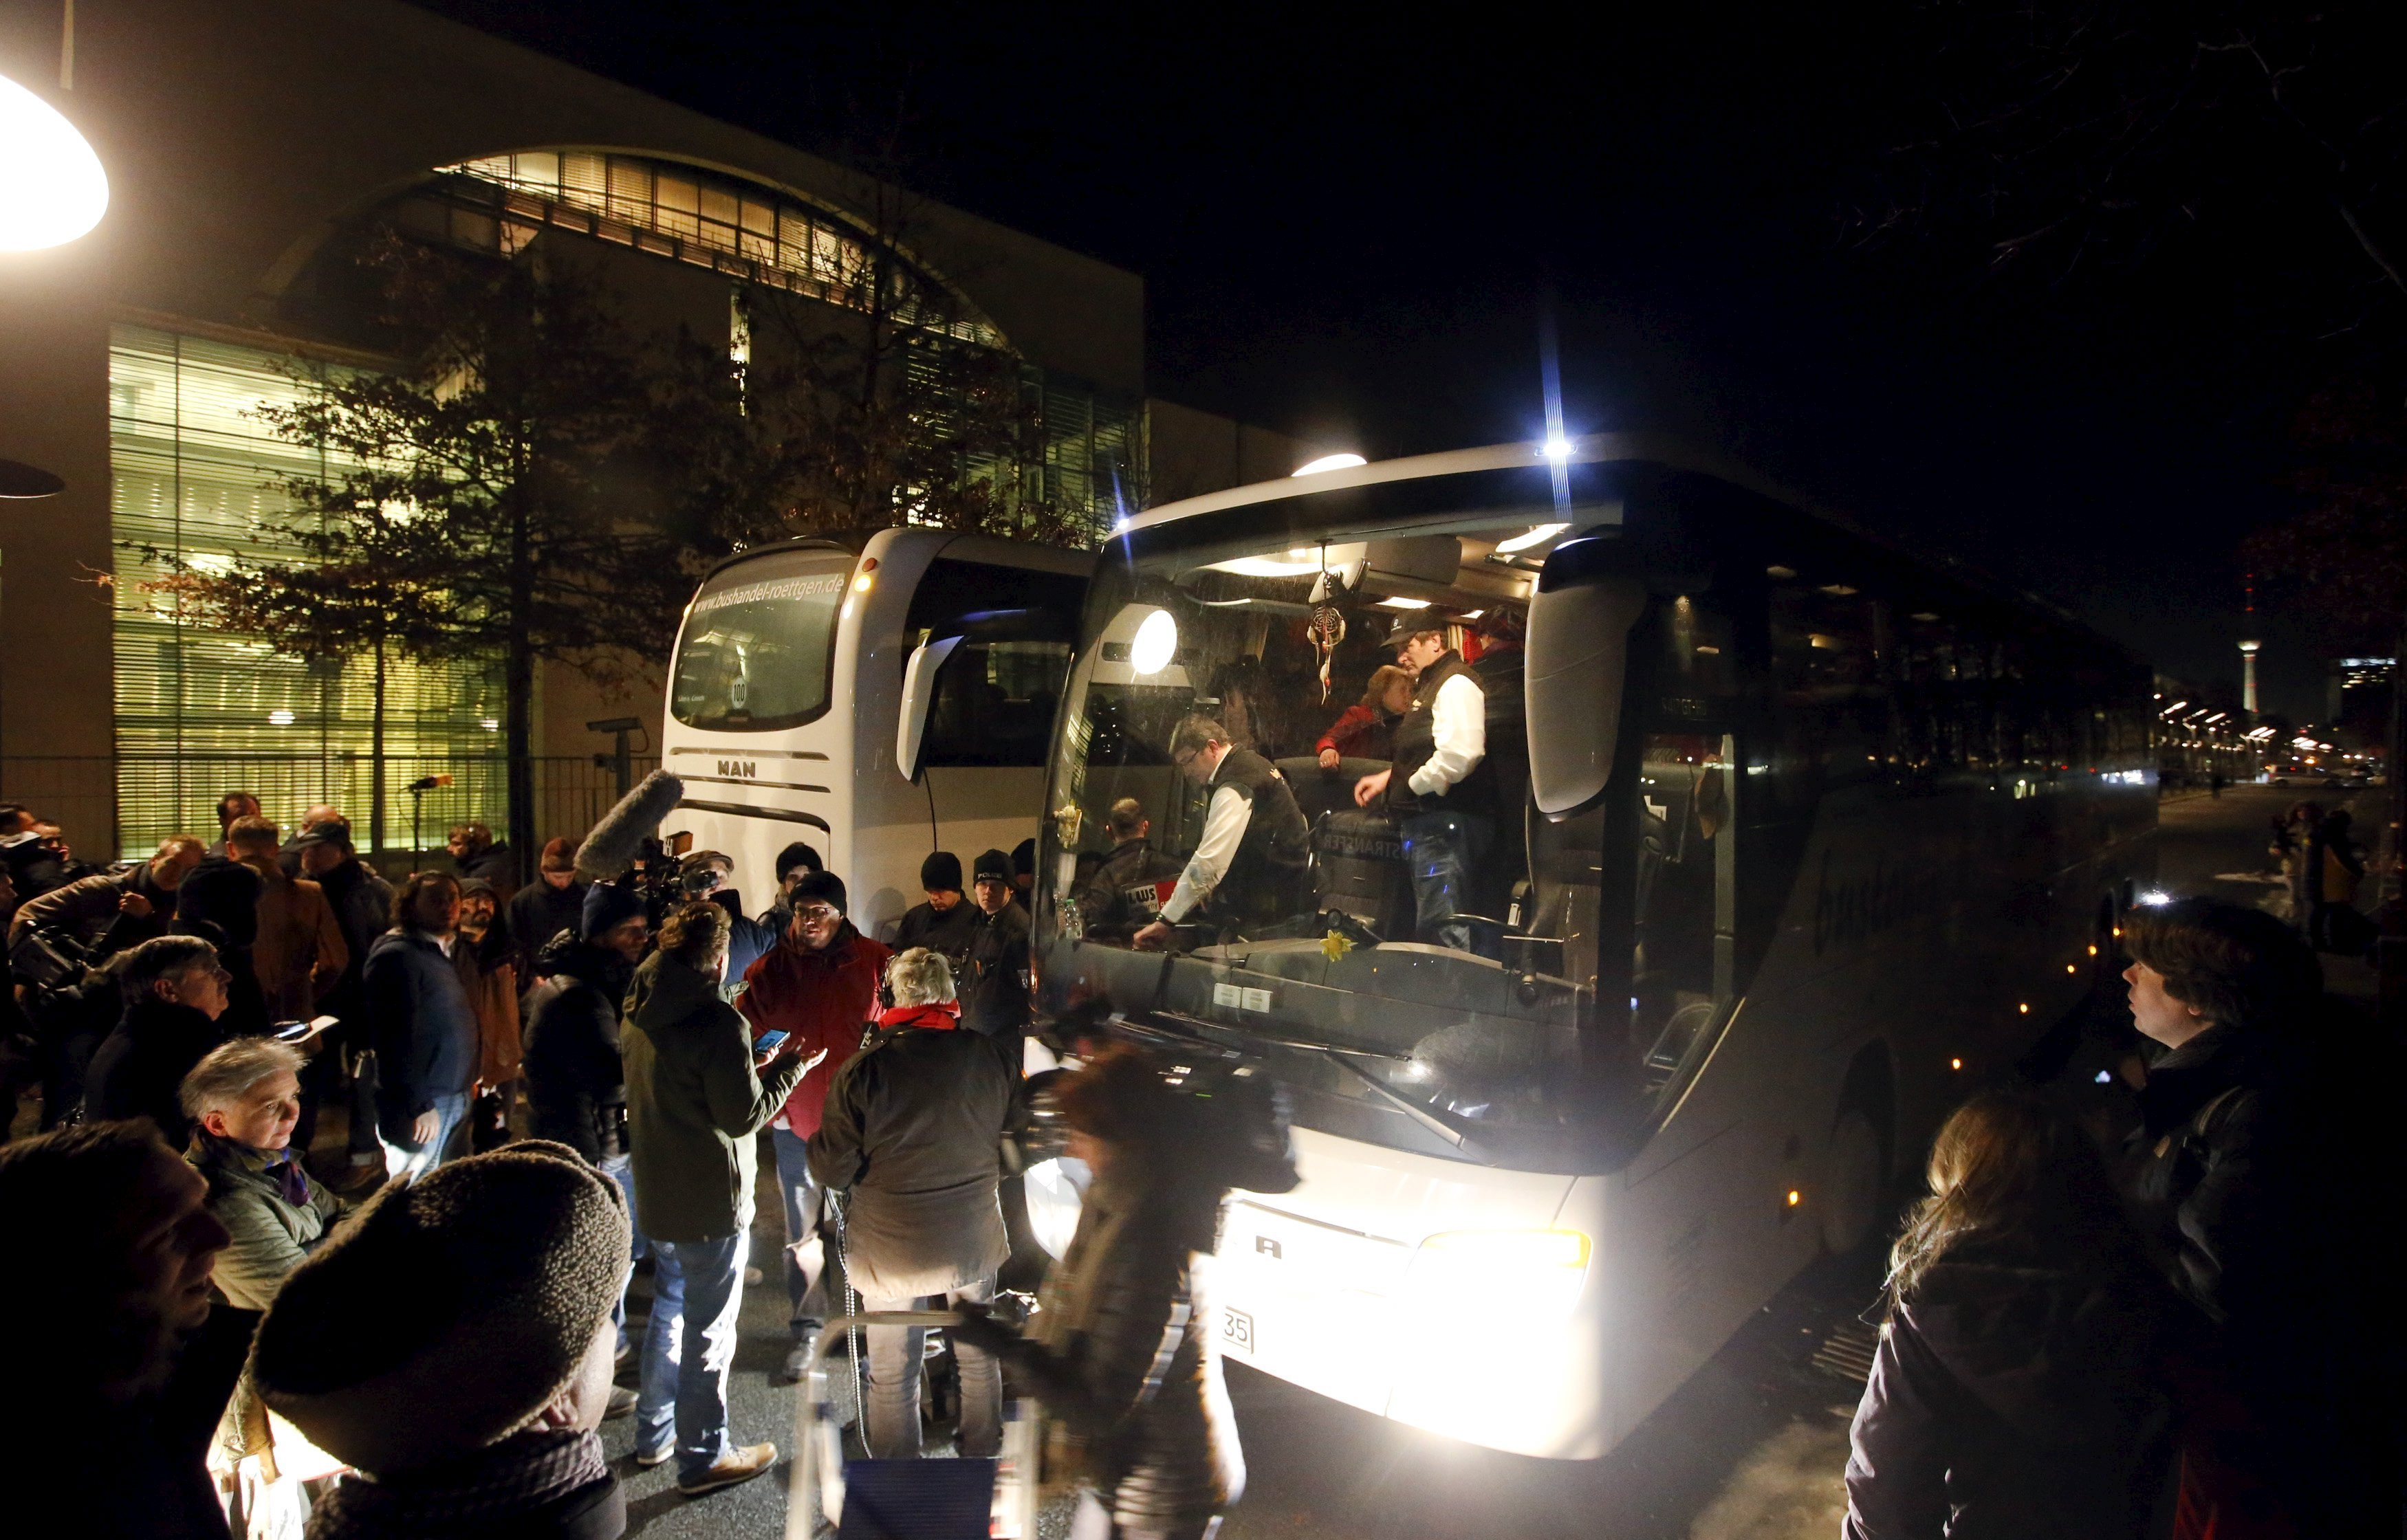 A bus (R) with refugees from the Bavarian town of Landshut is pictured after its arrival to the Chancellery building in Berlin, Germany, January 14, 2016